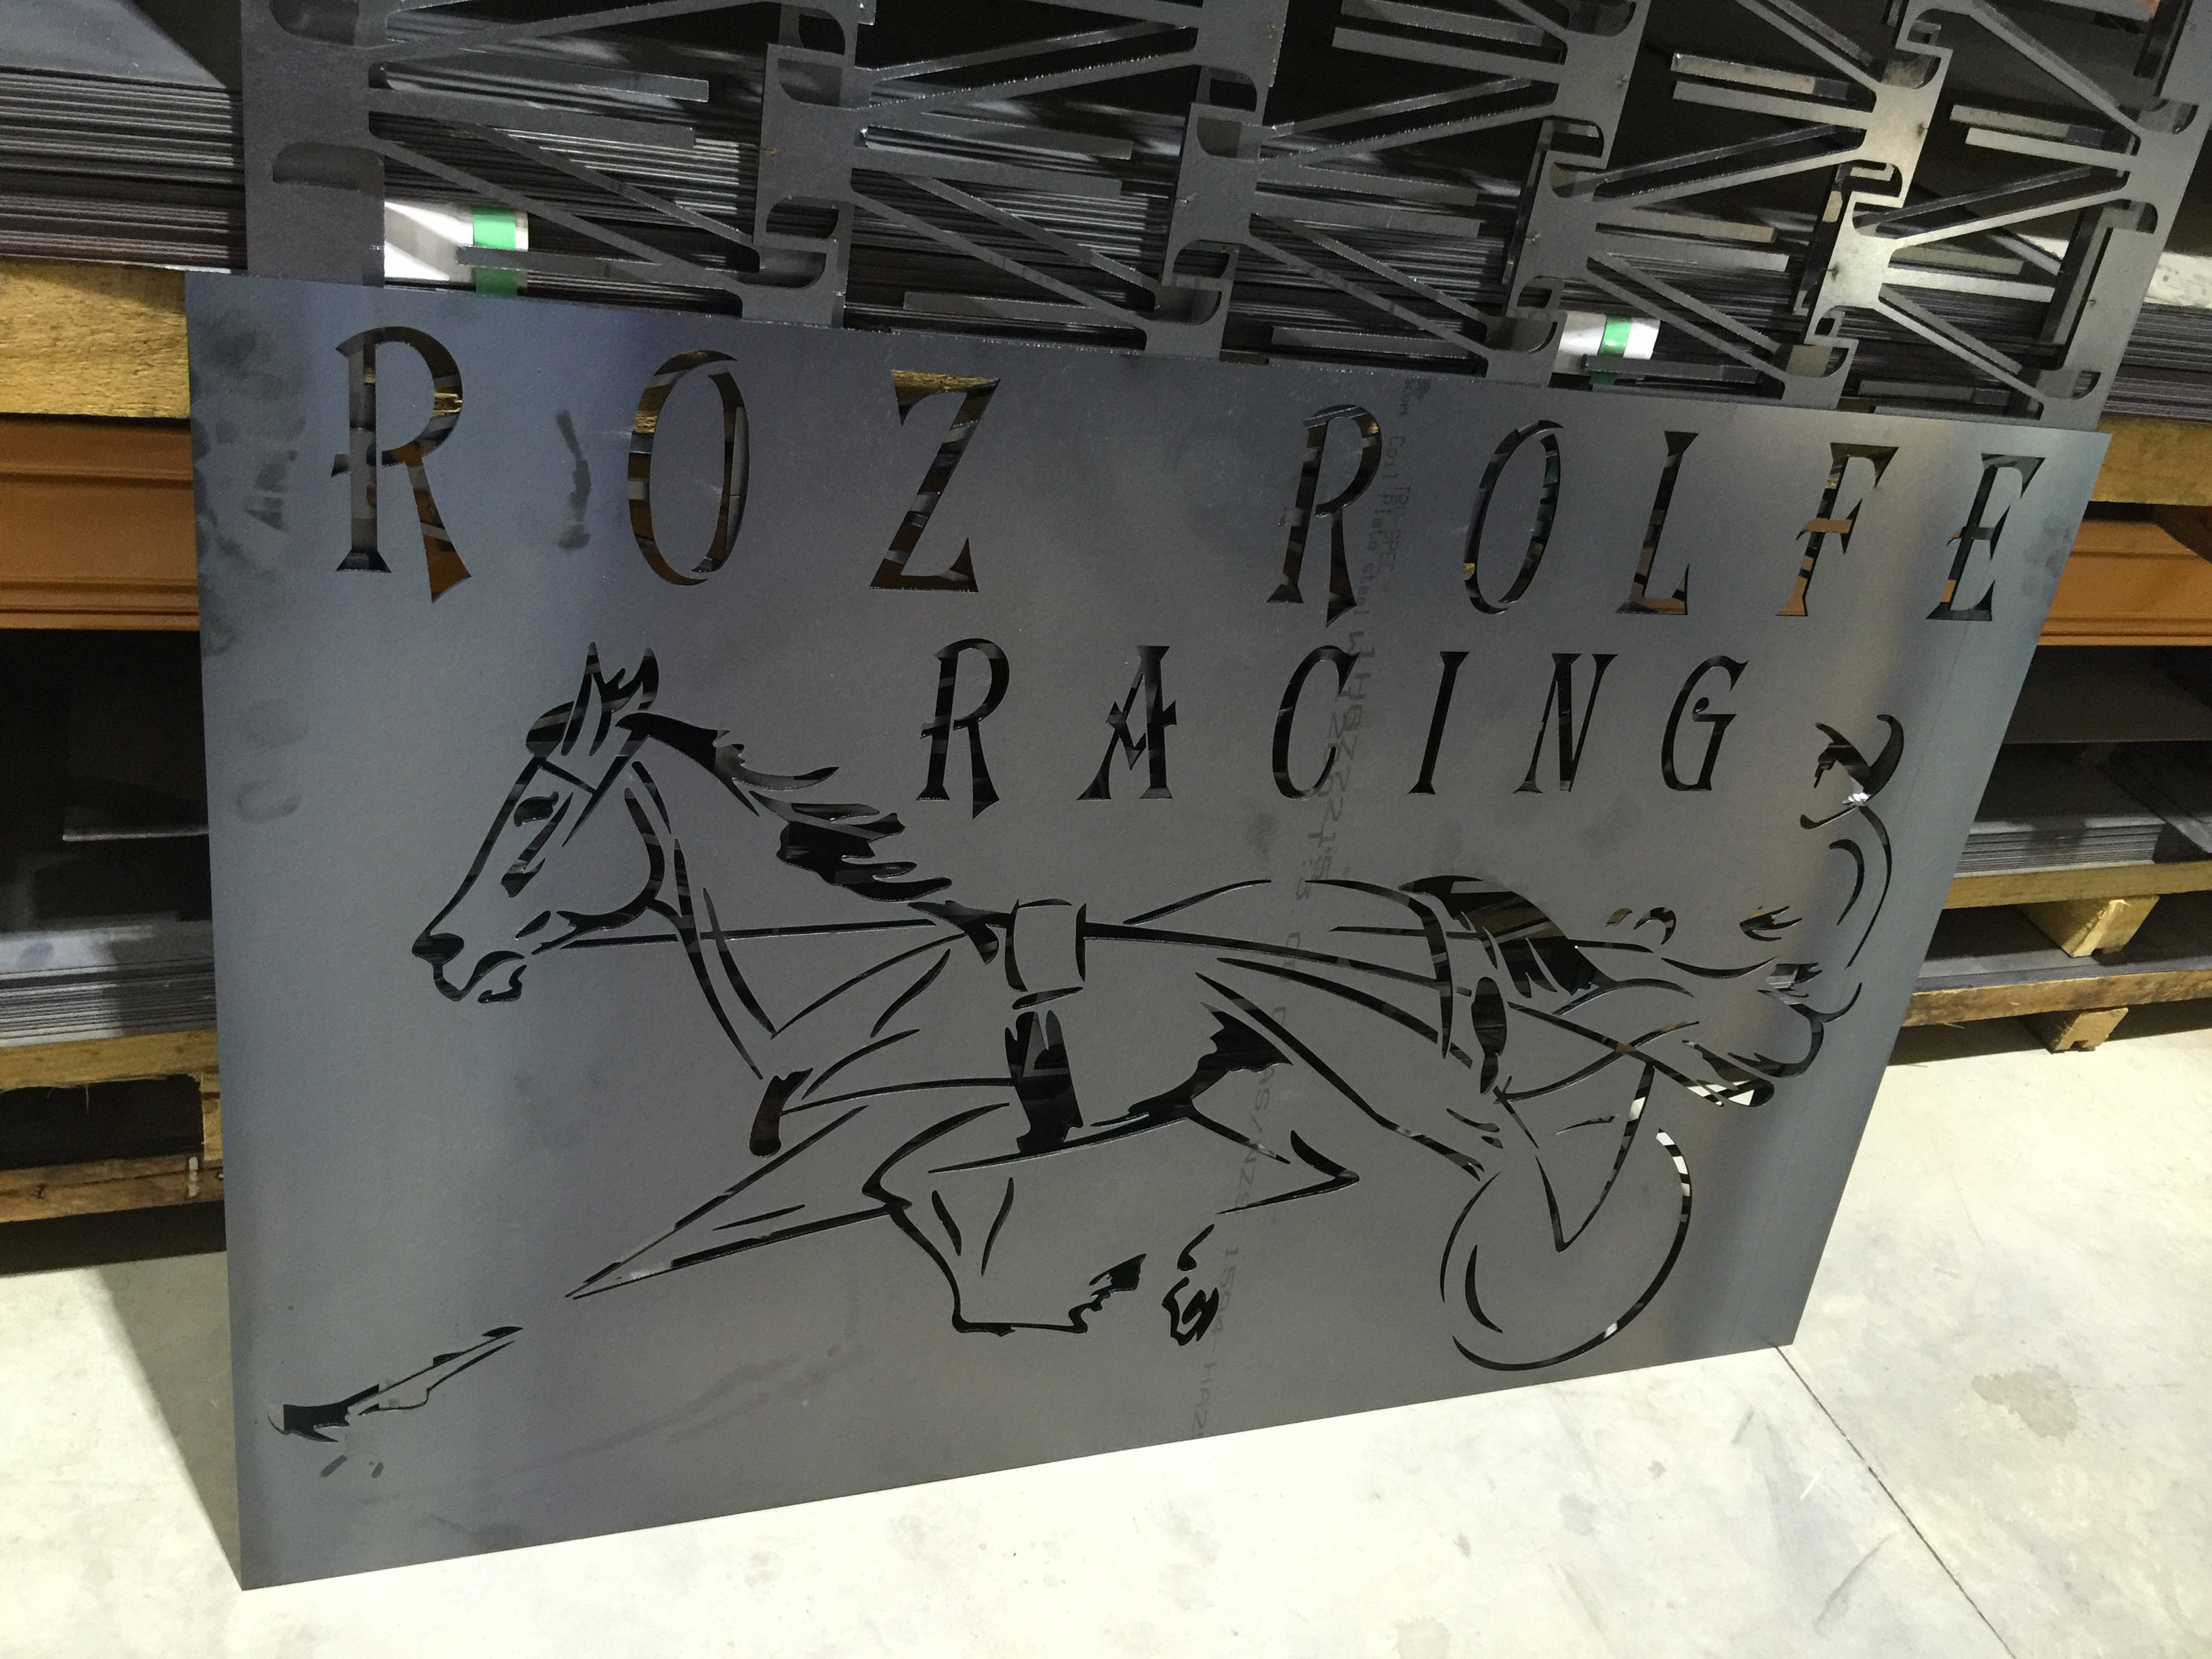 Roz Rolphe Racing